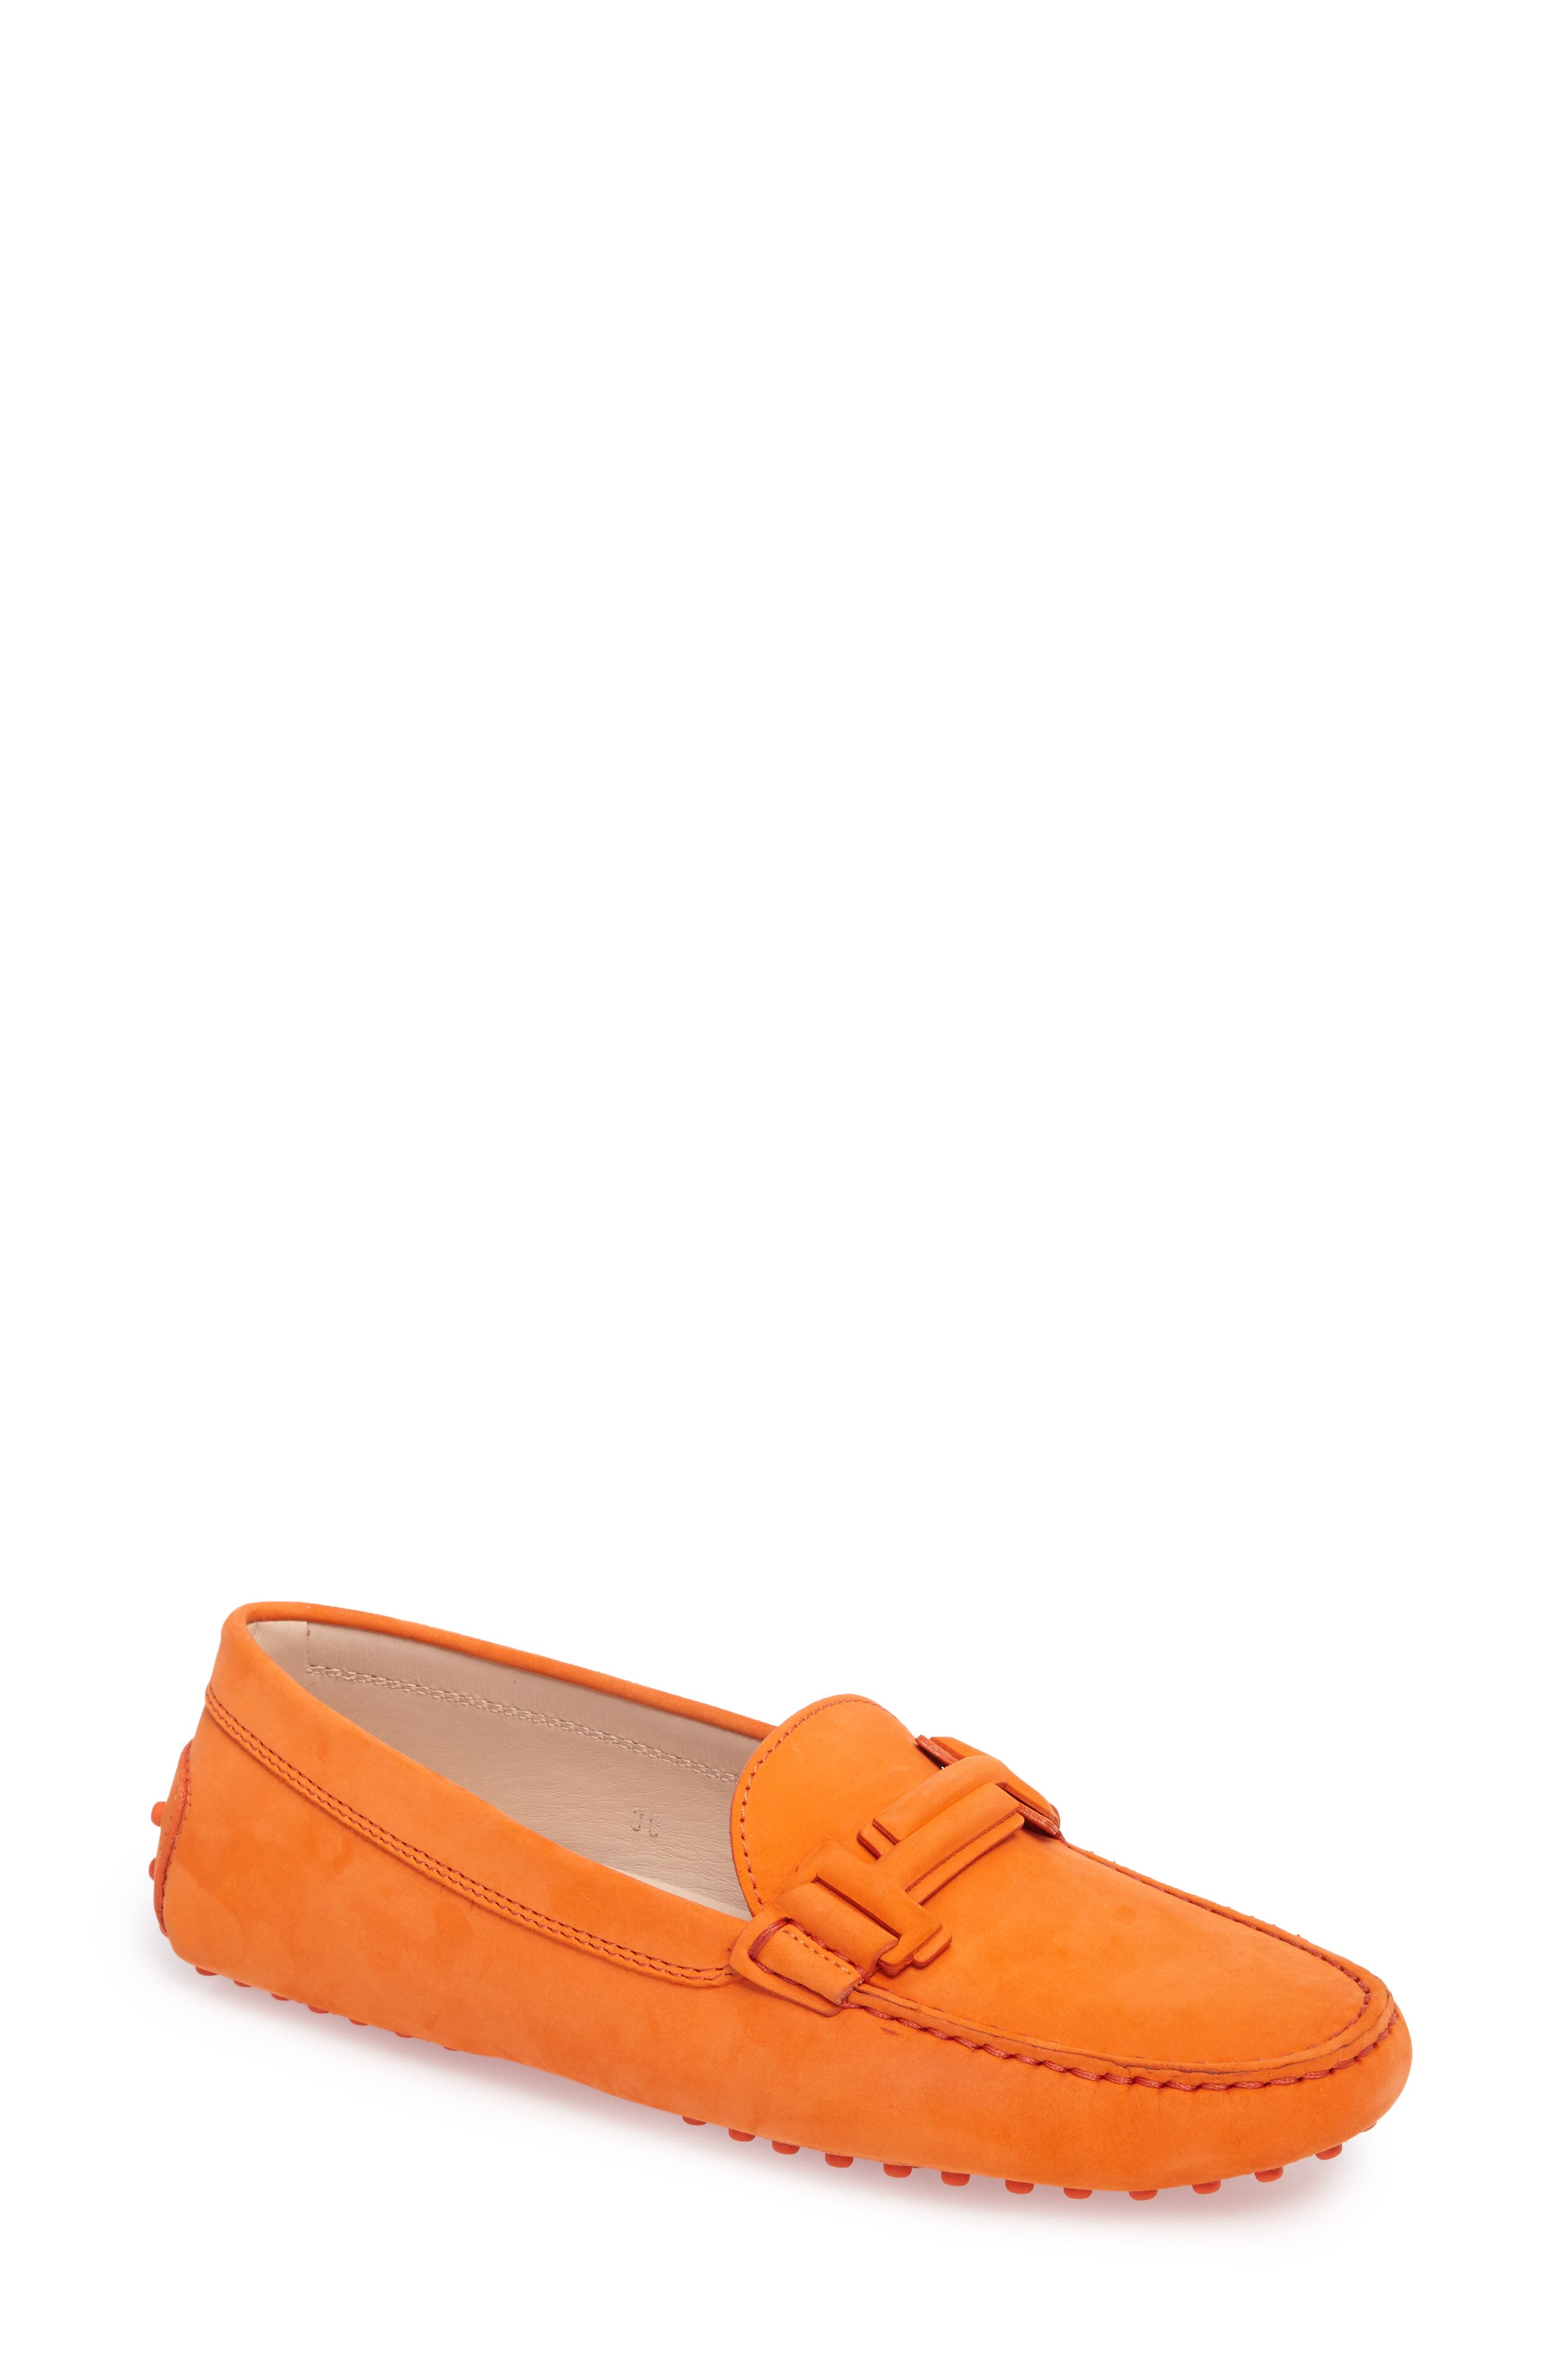 Gommini Covered Double T Loafer,                         Main,                         color, Orange